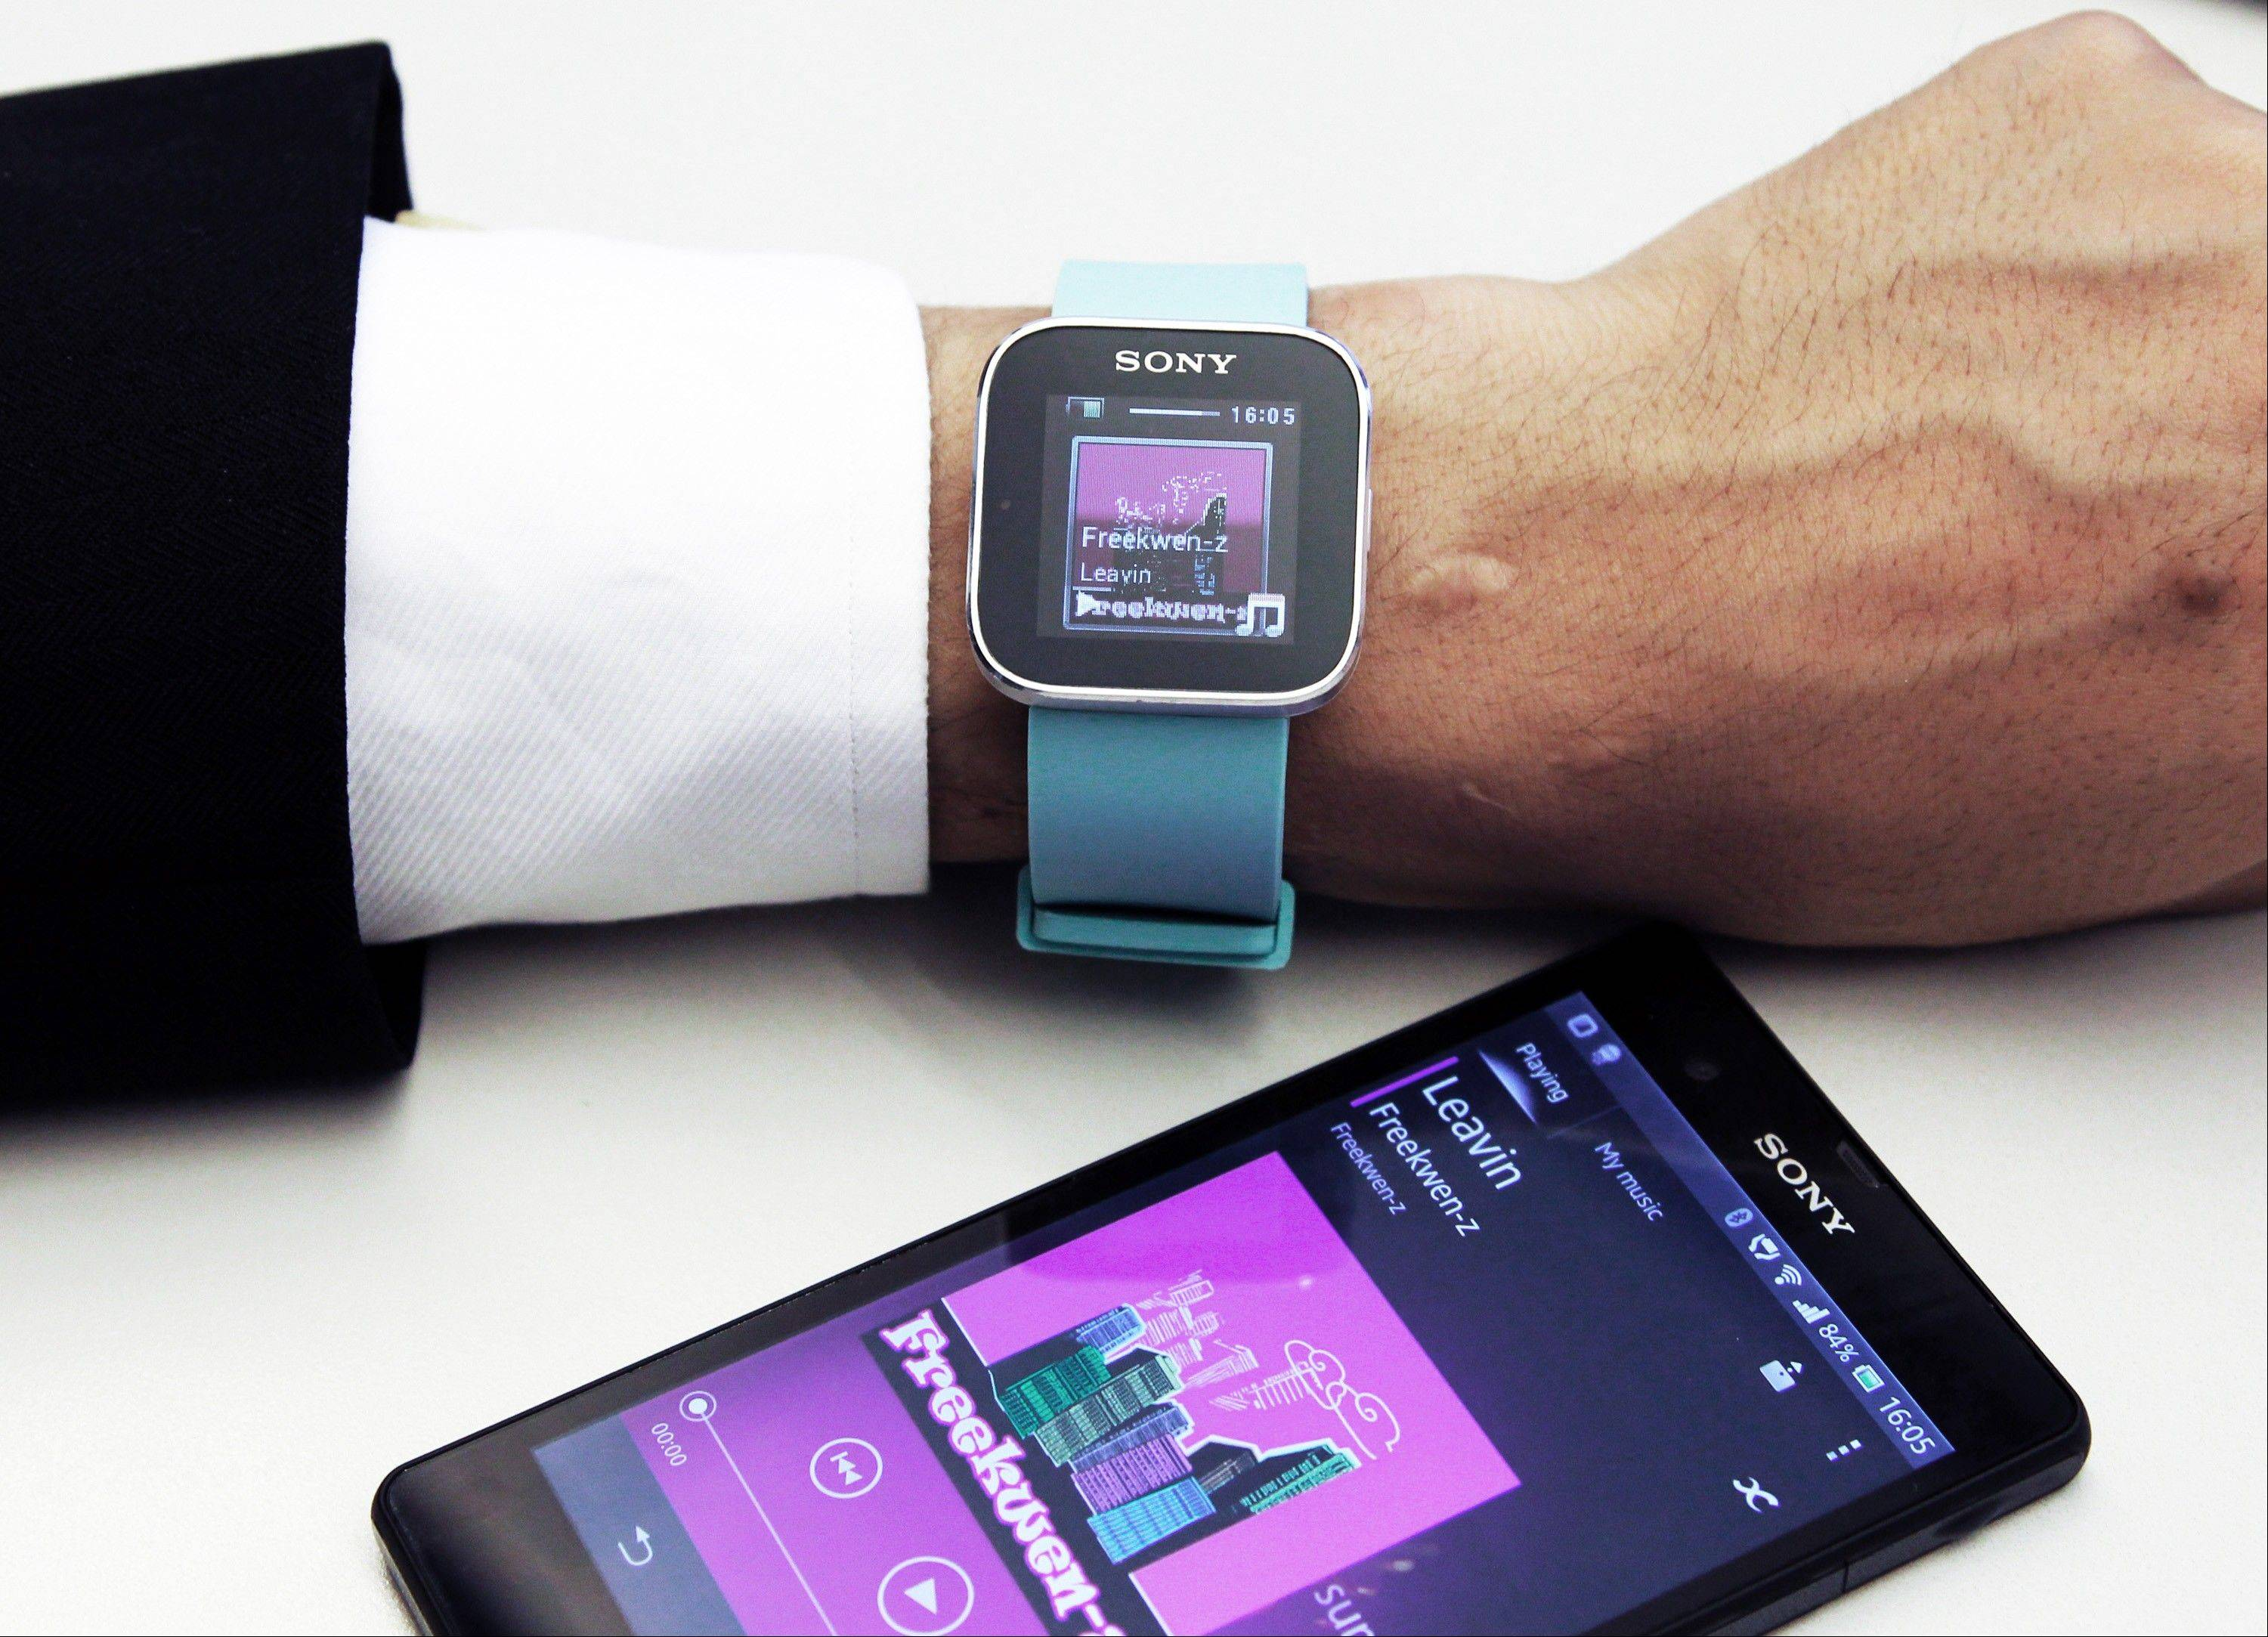 A Sony Mobile Communications Inc. SmartWatch MN2, top, is displayed with the company's Xperia smartphone at the Sony Corp. headquarters in Tokyo, Japan, on Monday, April 15, 2013. Priced at $130, Sony's 1.3-inch (3.3-centimeter) touchscreen watch wirelessly connects to Android smartphones using Bluetooth technology. The gadget alerts users to calls and allows them to reply to e-mails or texts with an array of pre-written messages.